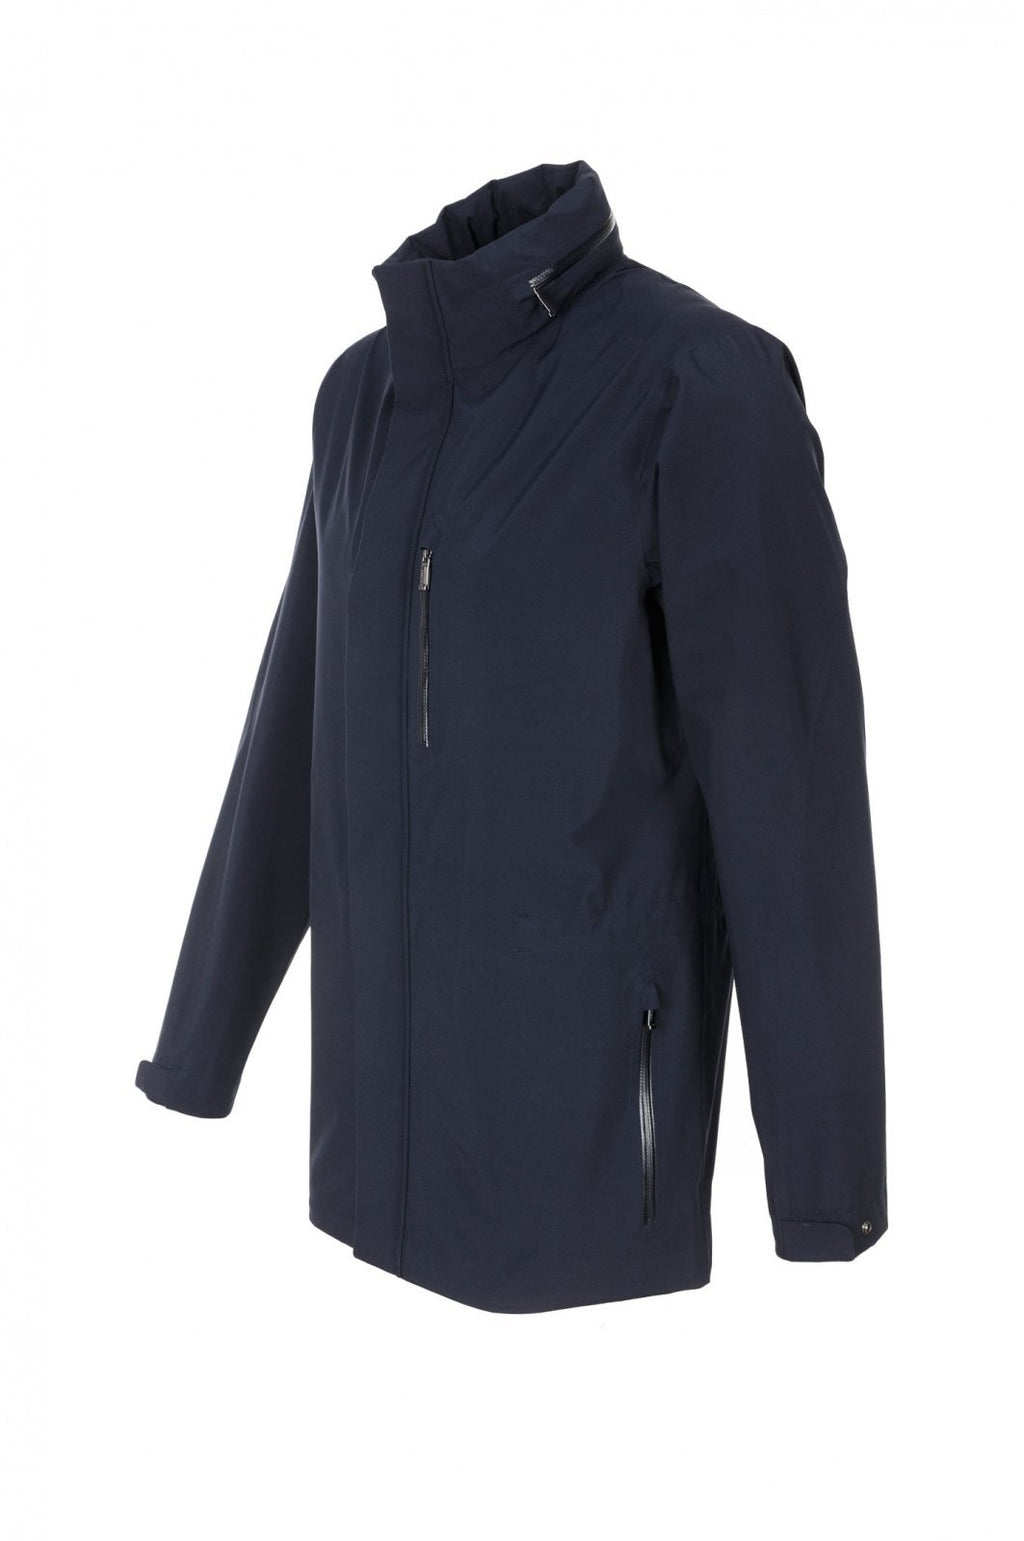 Z ZEGNA Dark Grey Waterproof Field Jacket